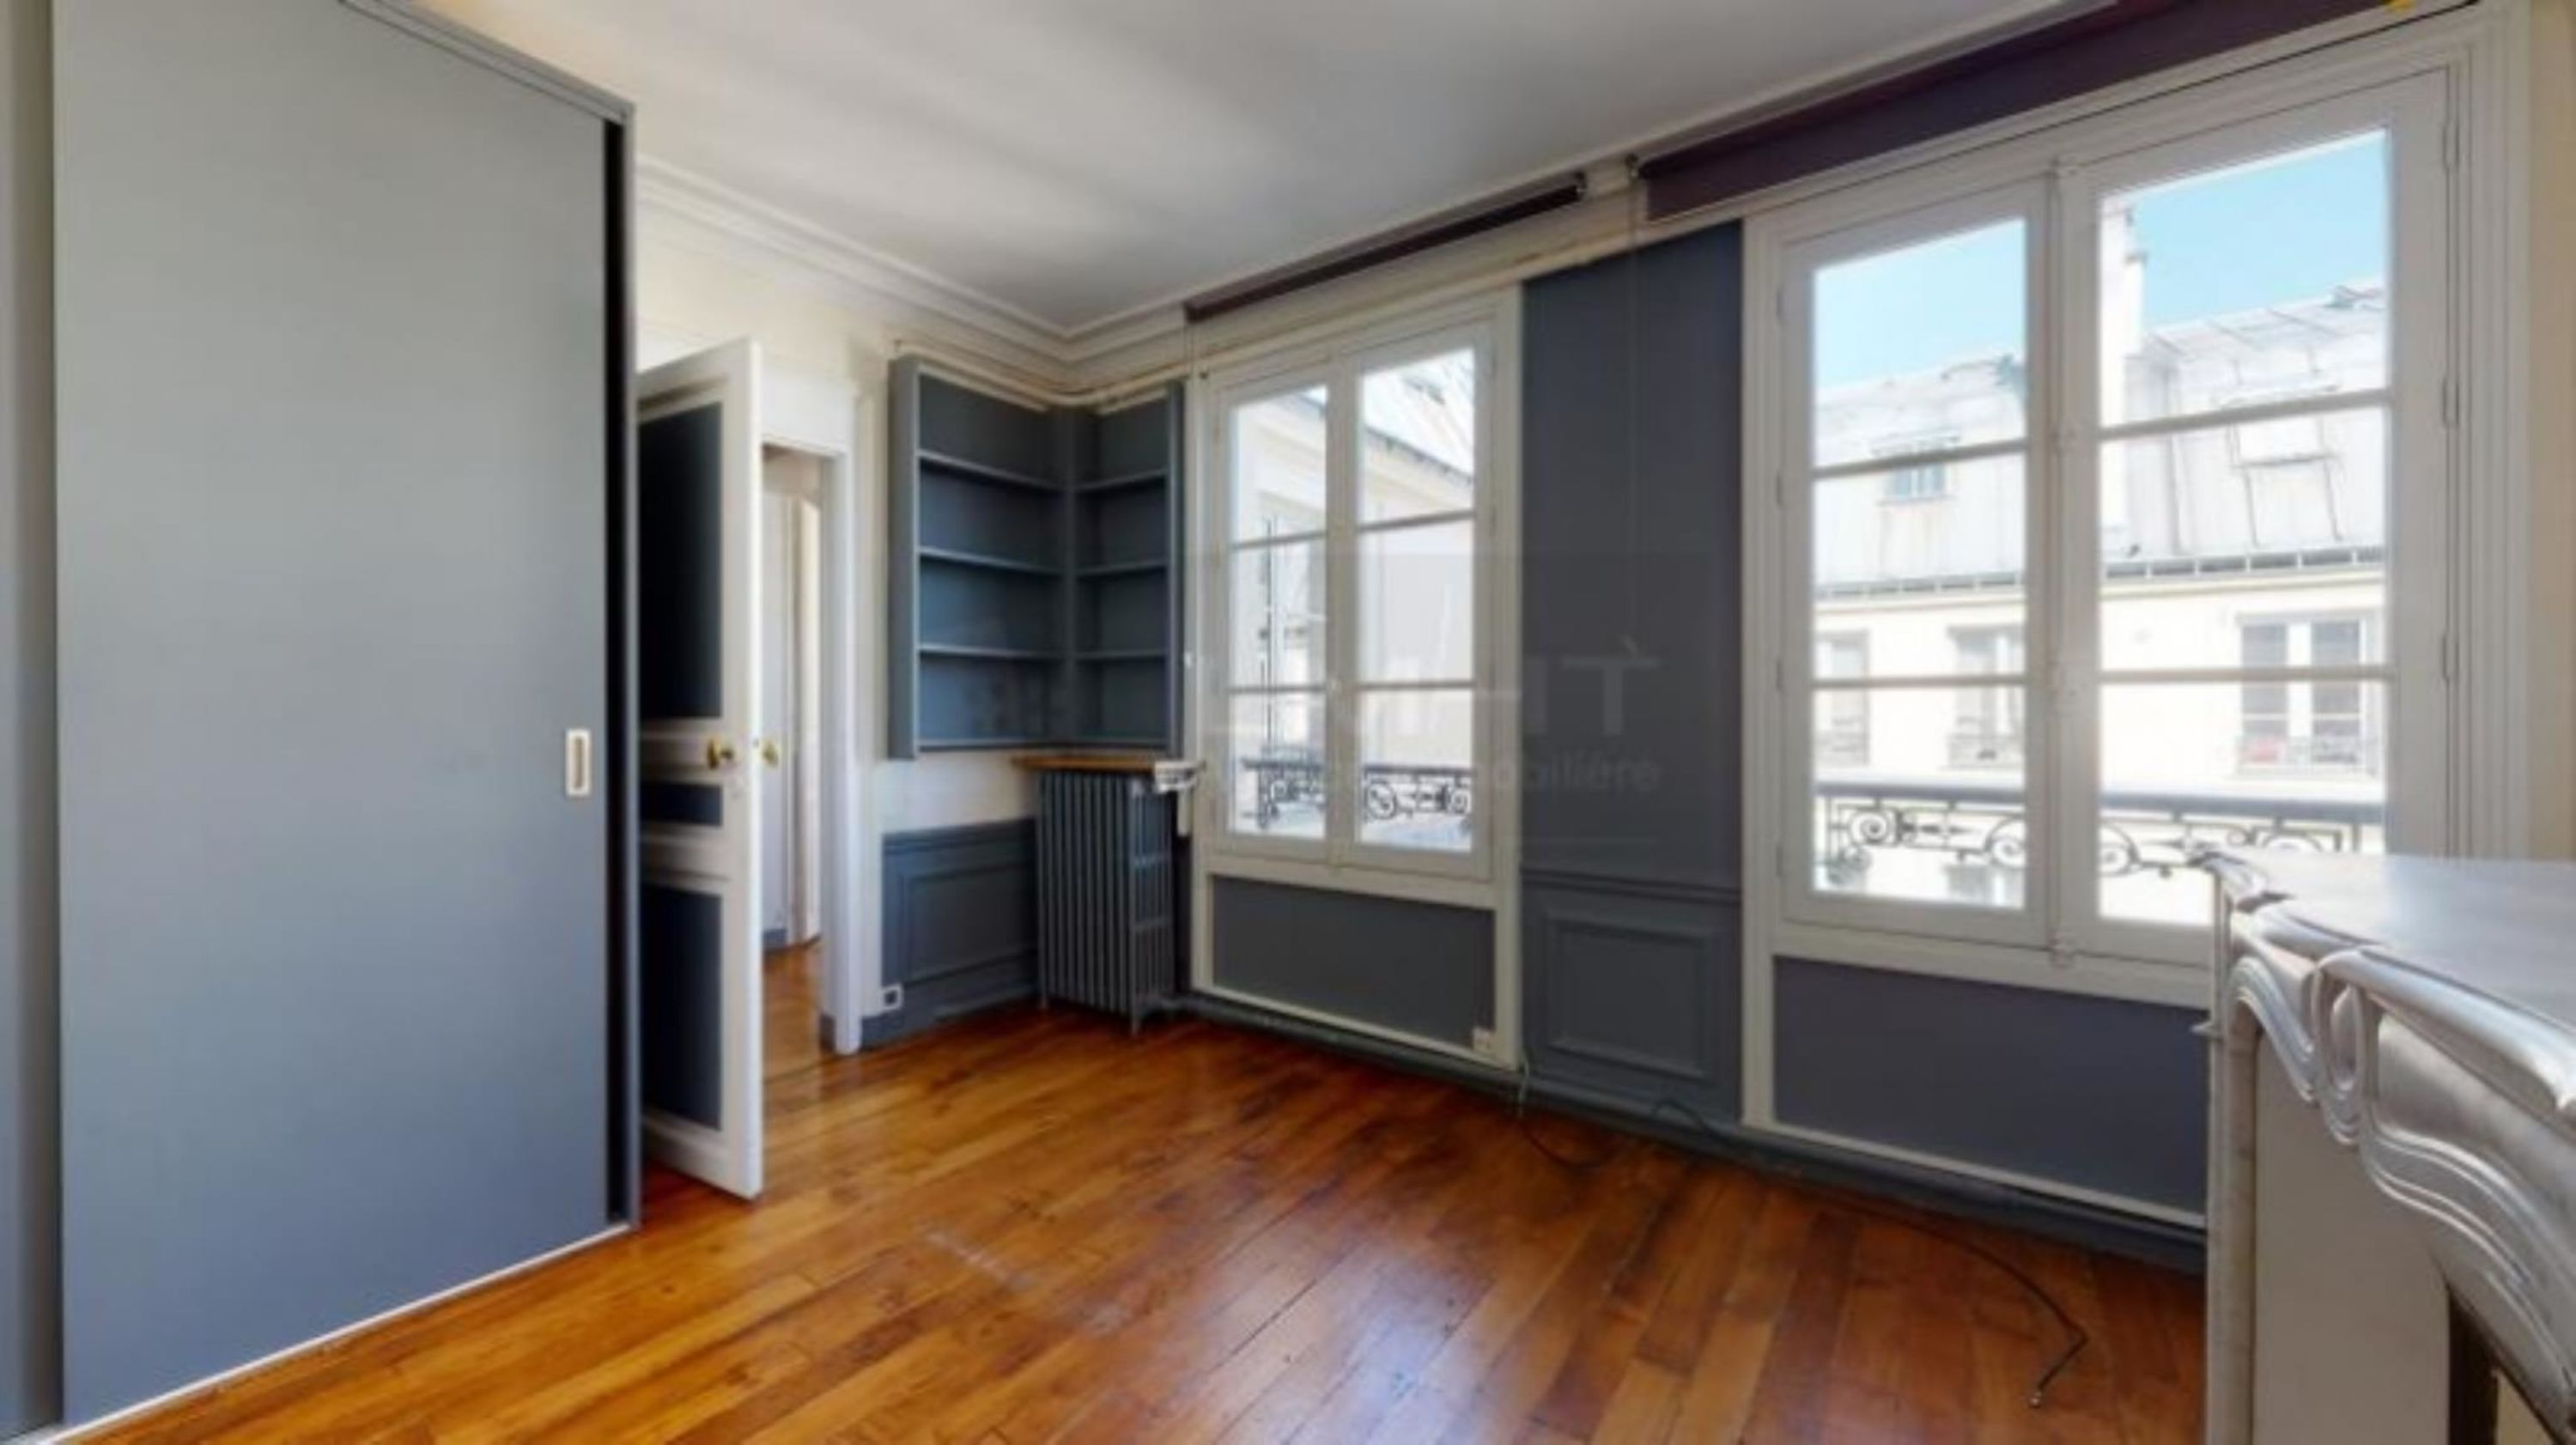 agence immobilière sevres 92 le chesnay 78 achat vente location appartement maison immobilier LMHT ANF MAKTBFKI